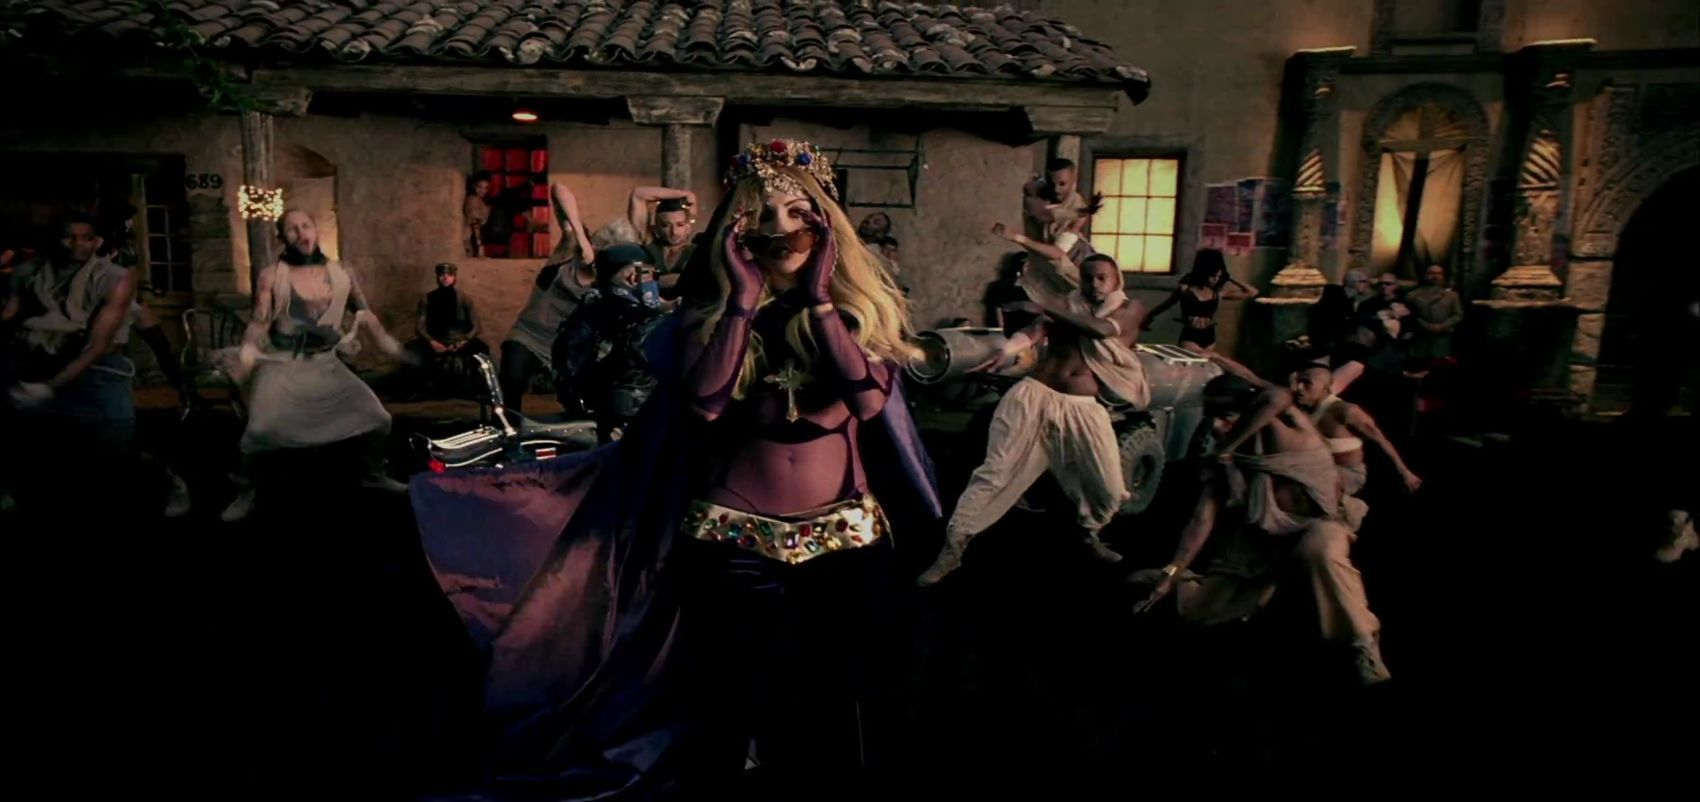 Lady Gaga - Judas - Music Video